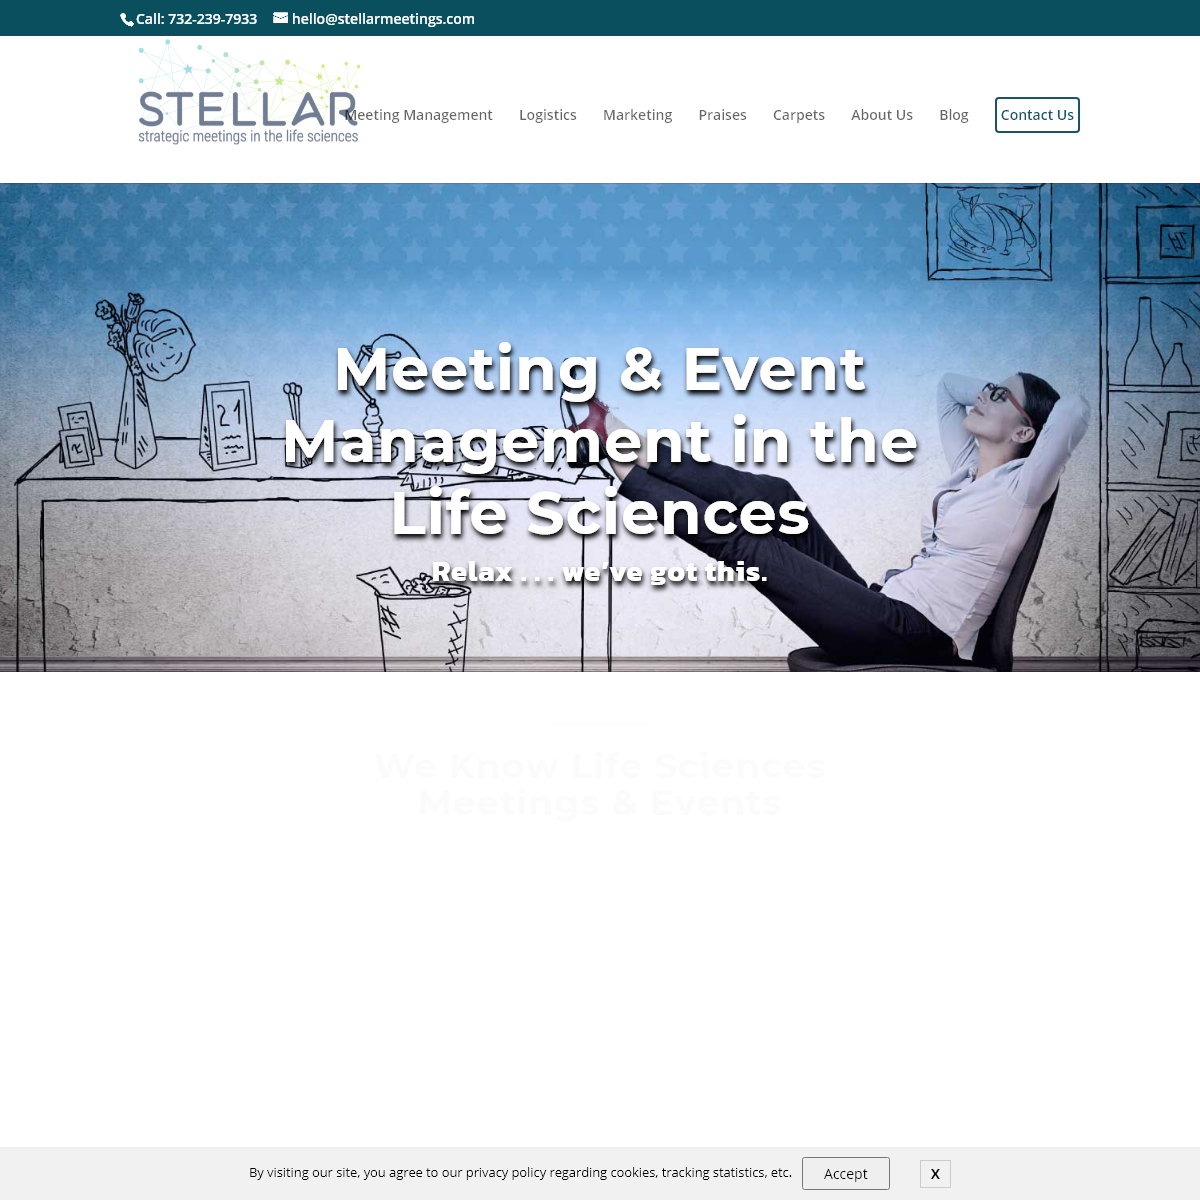 Event management & meeting production for the life sciences - Stellar